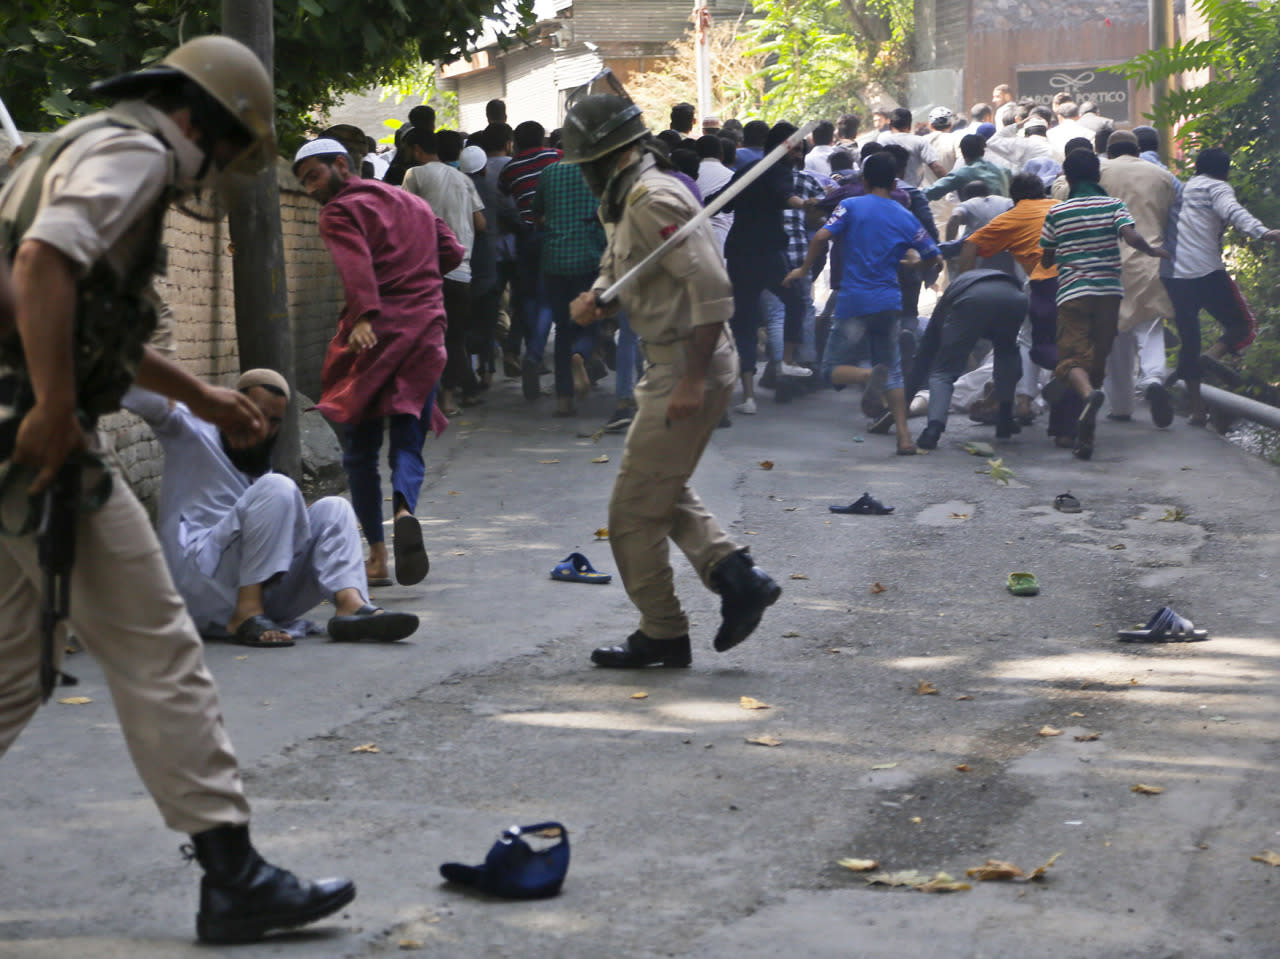 <p>Indian policemen charge at protestors outside the office of the United Nations Military Observer Group in Srinagar, Indian controlled Kashmir, July 29, 2016. Police fired tear gas and used wooden batons to disperse the protesters. However, youths regrouped in streets later and clashed with the police, hurling rocks at them. (Photo: Mukhtar Khan/AP)</p>